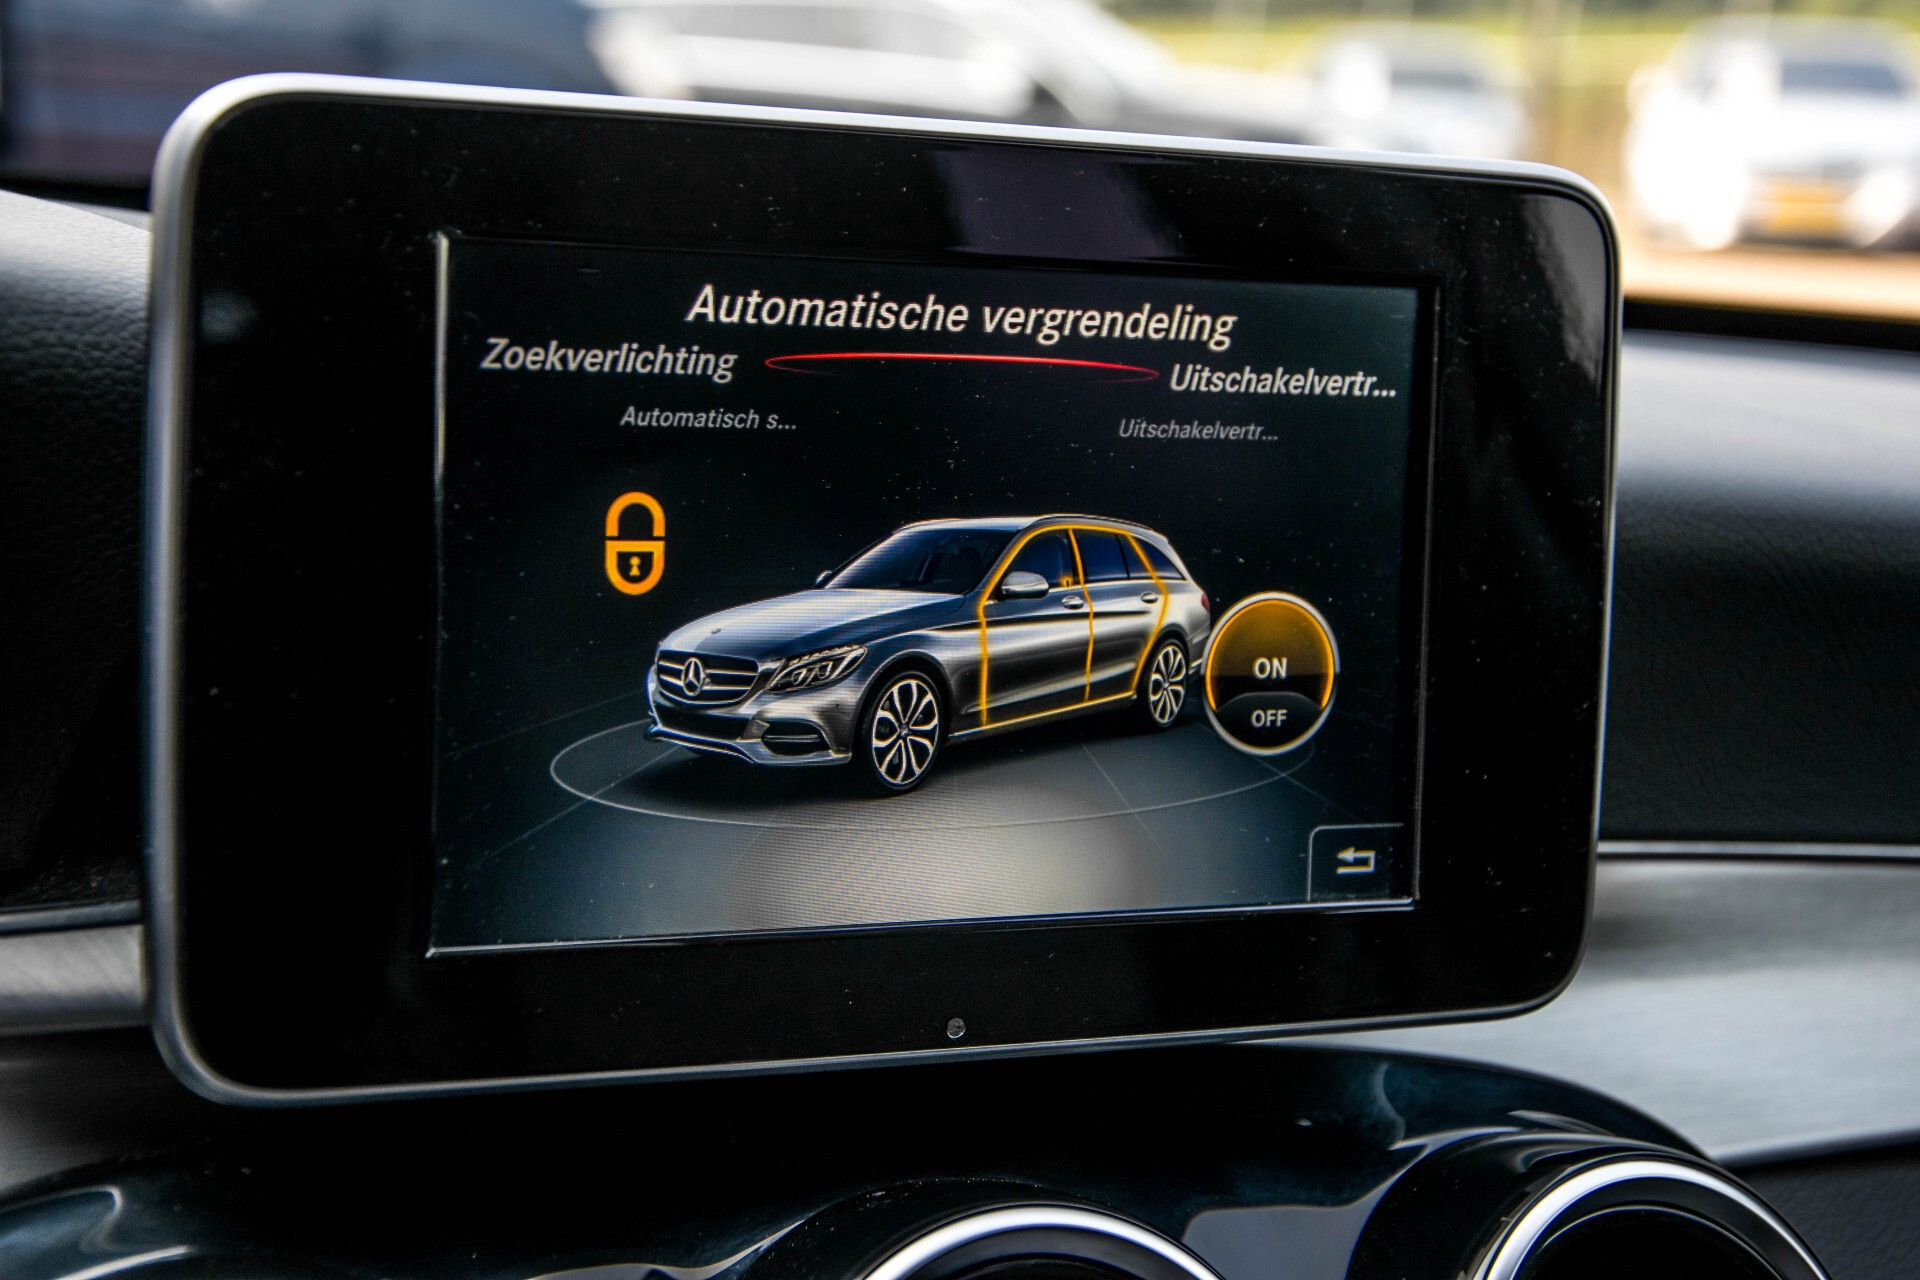 Mercedes-Benz C-Klasse Estate 180 Avantgarde LED/Navi/Privacyglas/Pts/Aut-koffer Aut7 Foto 26